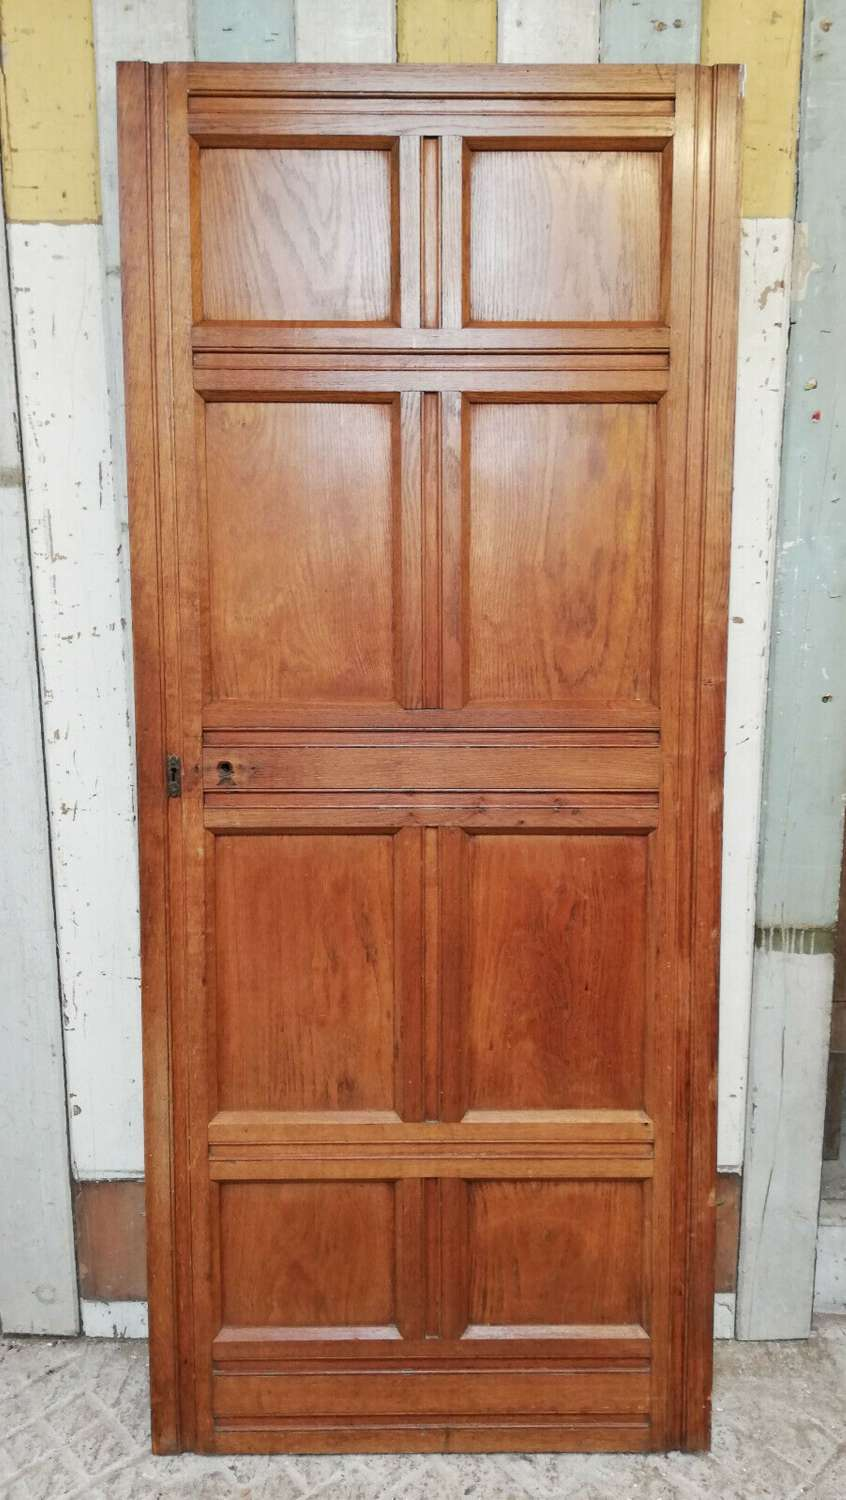 DI0706 ARTS AND CRAFTS OAK AND MAHOGANY FACED INTERNAL PINE DOOR